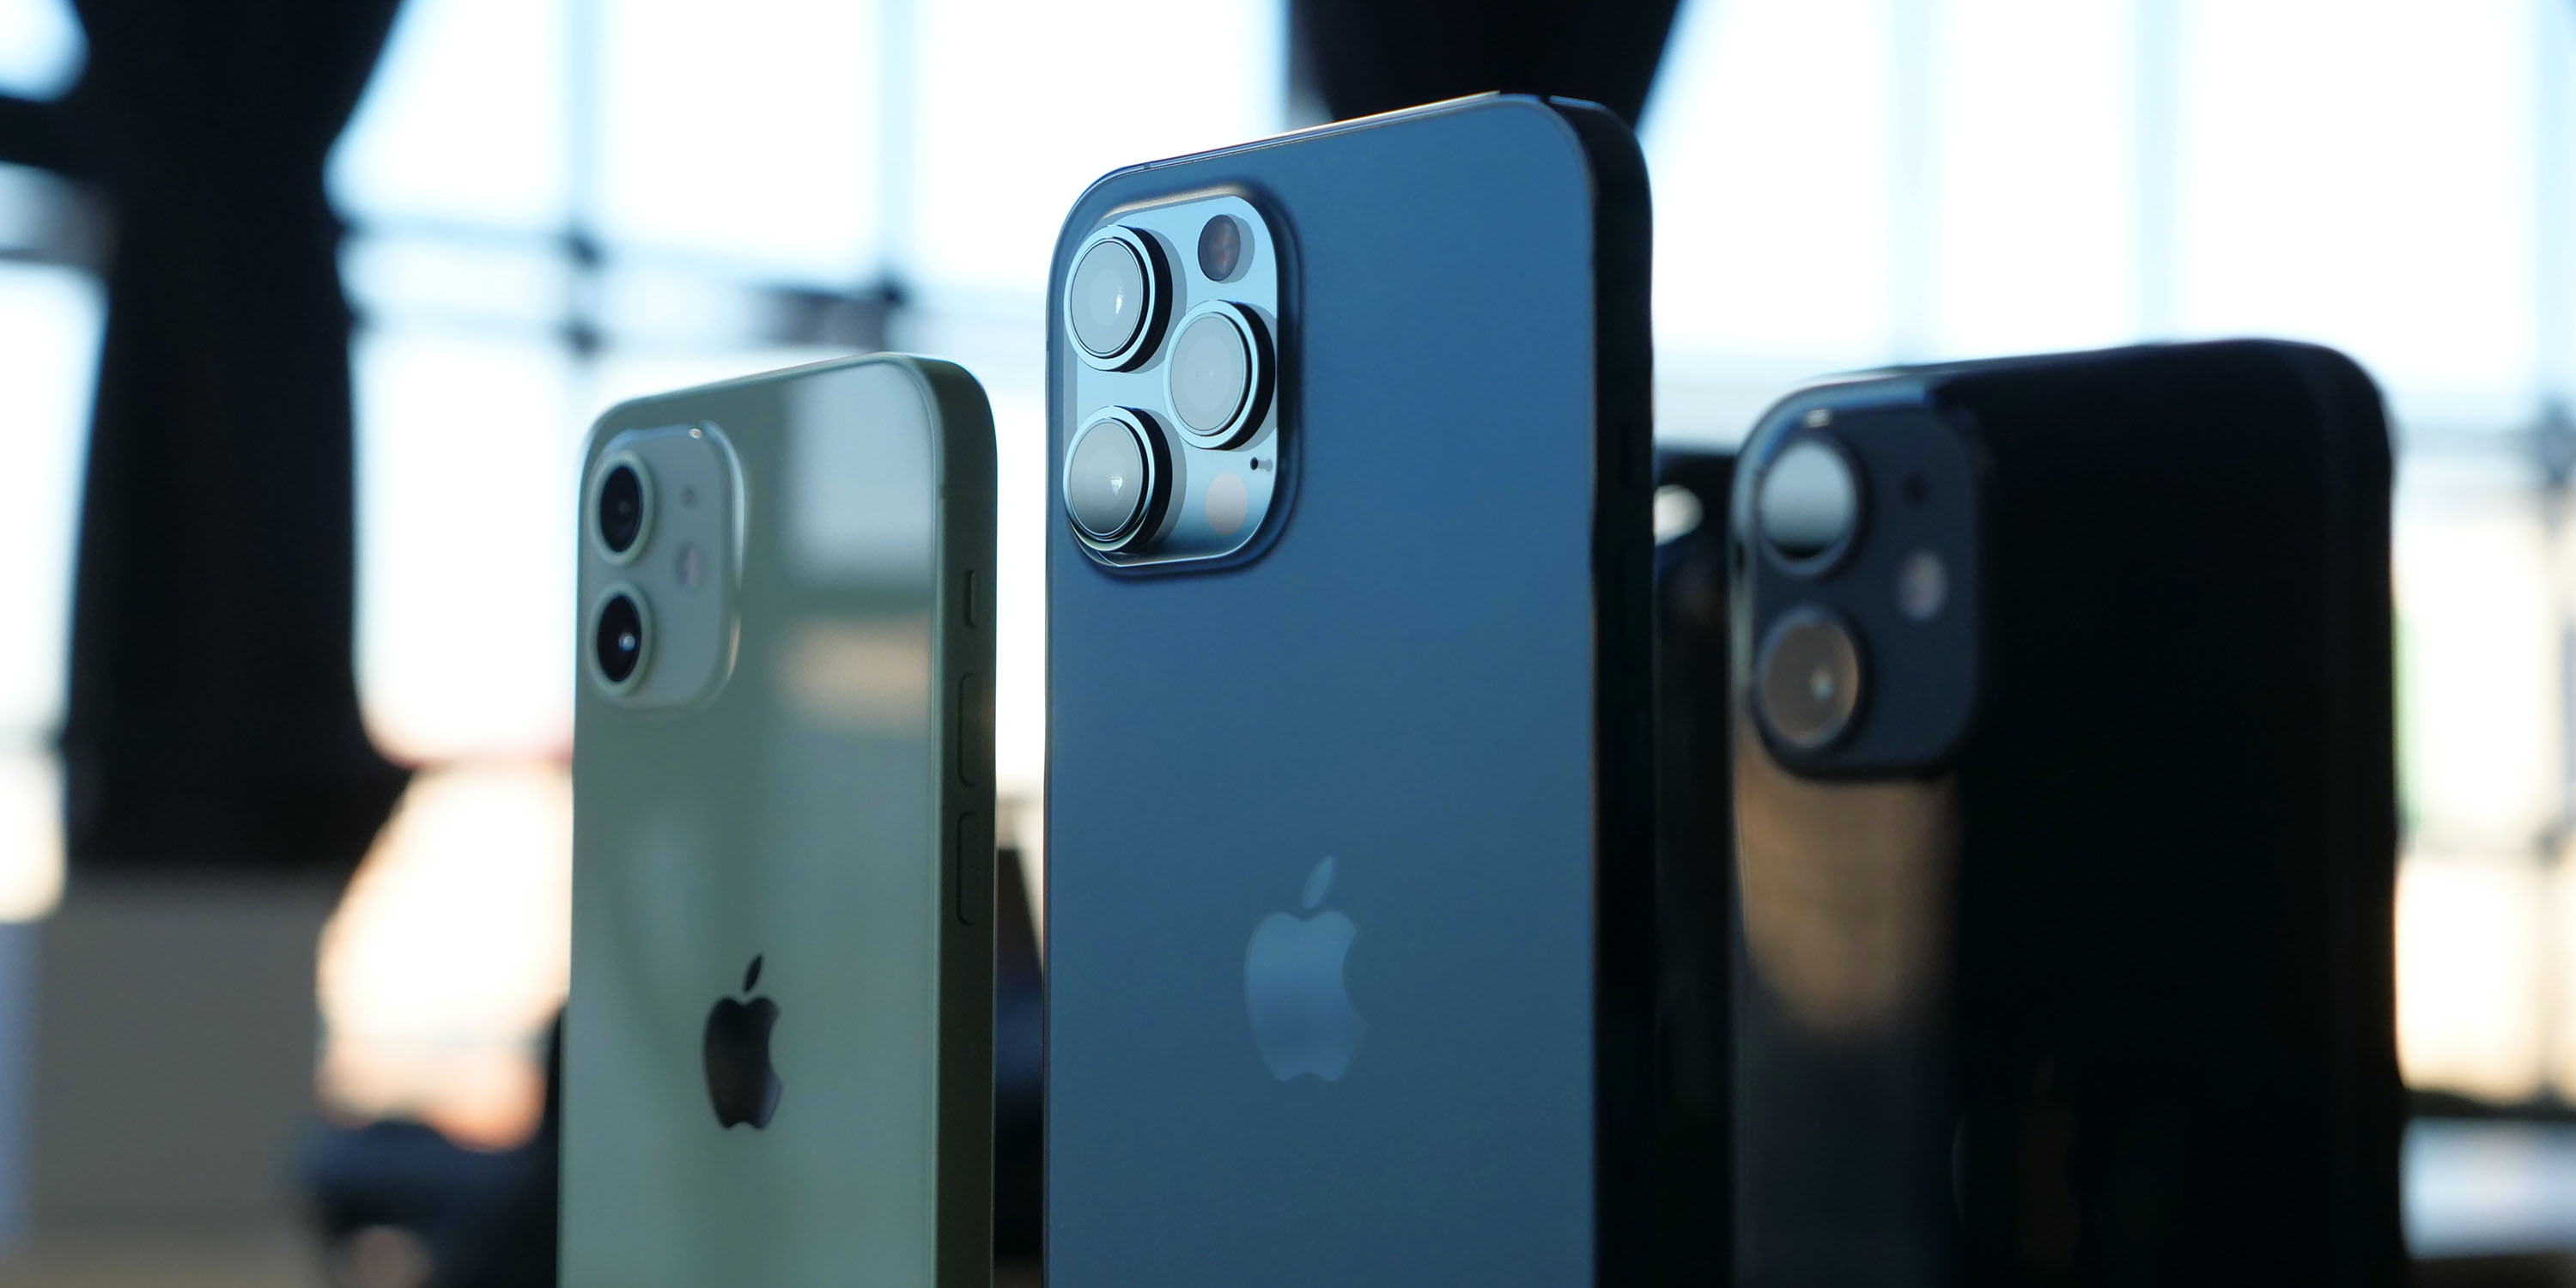 iPhone 12 demand set to remain high